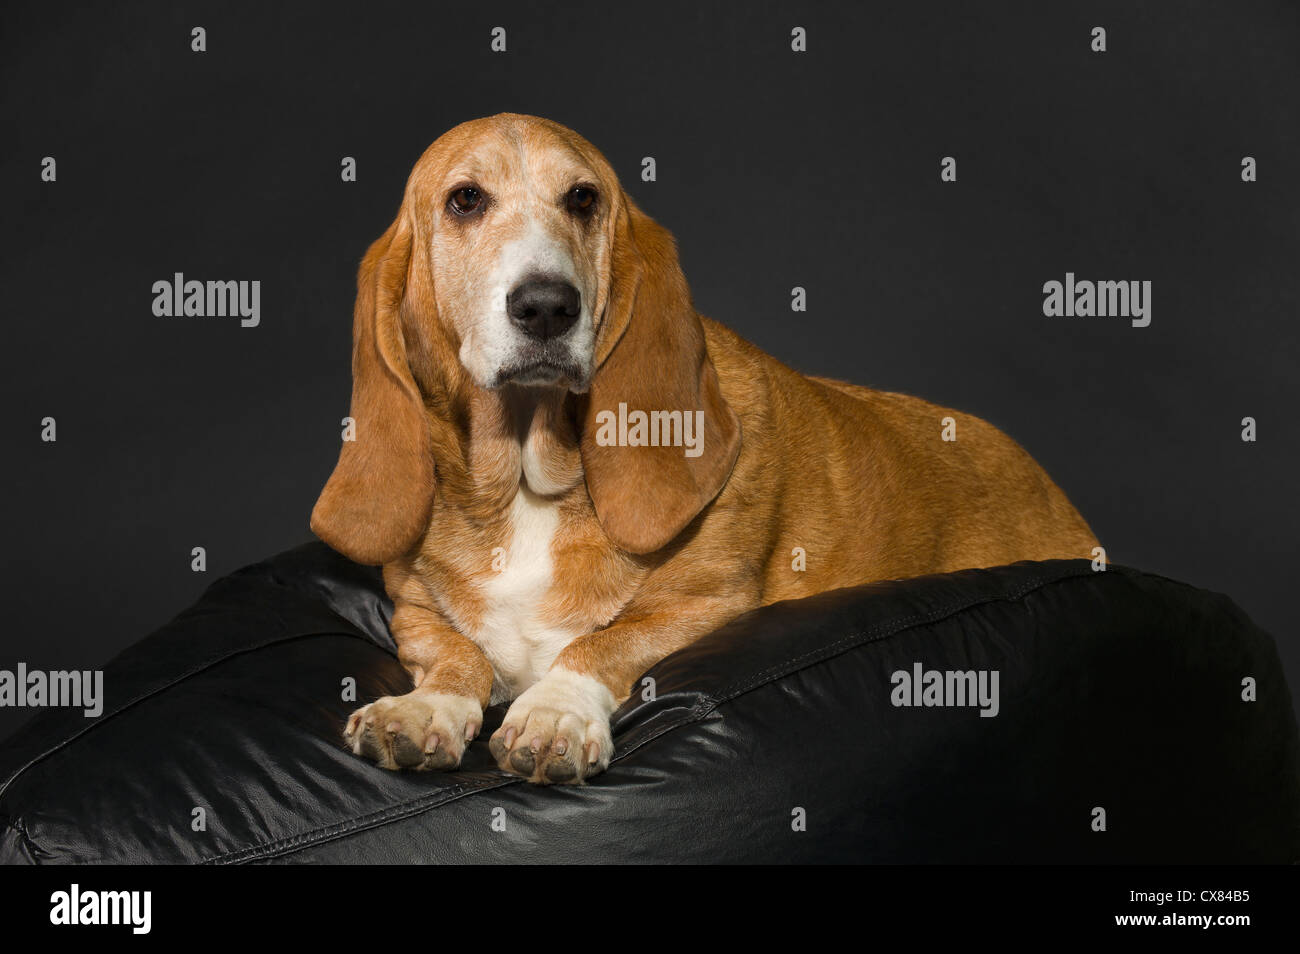 Bassett Hound On A Black Cushion And Background; St. Albert, Alberta, Canada - Stock Image